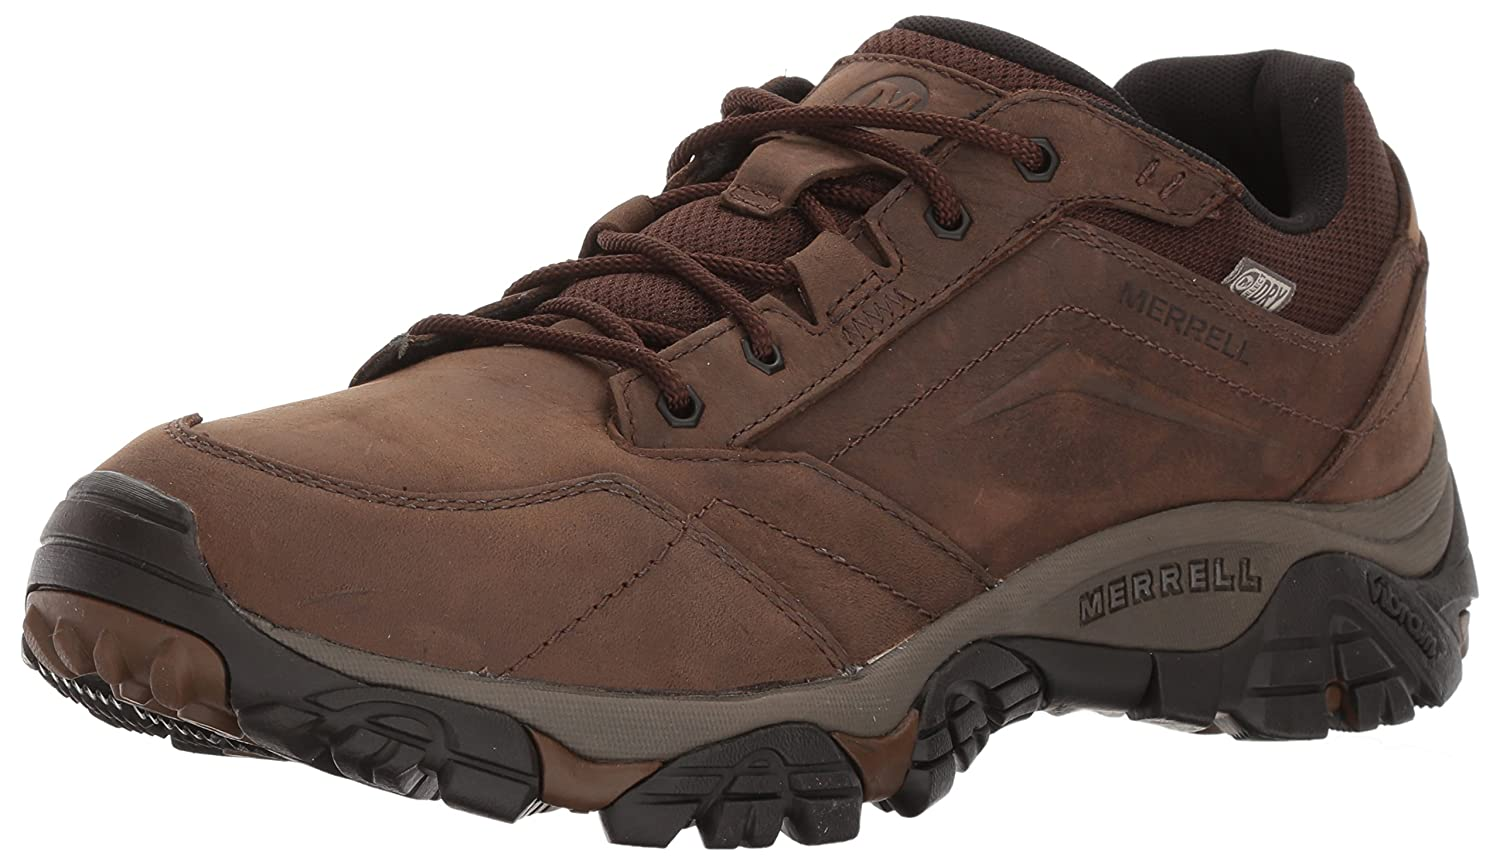 Merrell Men's Moab Adventure Lace Waterproof Hiking Shoe Merrell Footwear MOAB ADVENTURE LACE WTPF-M